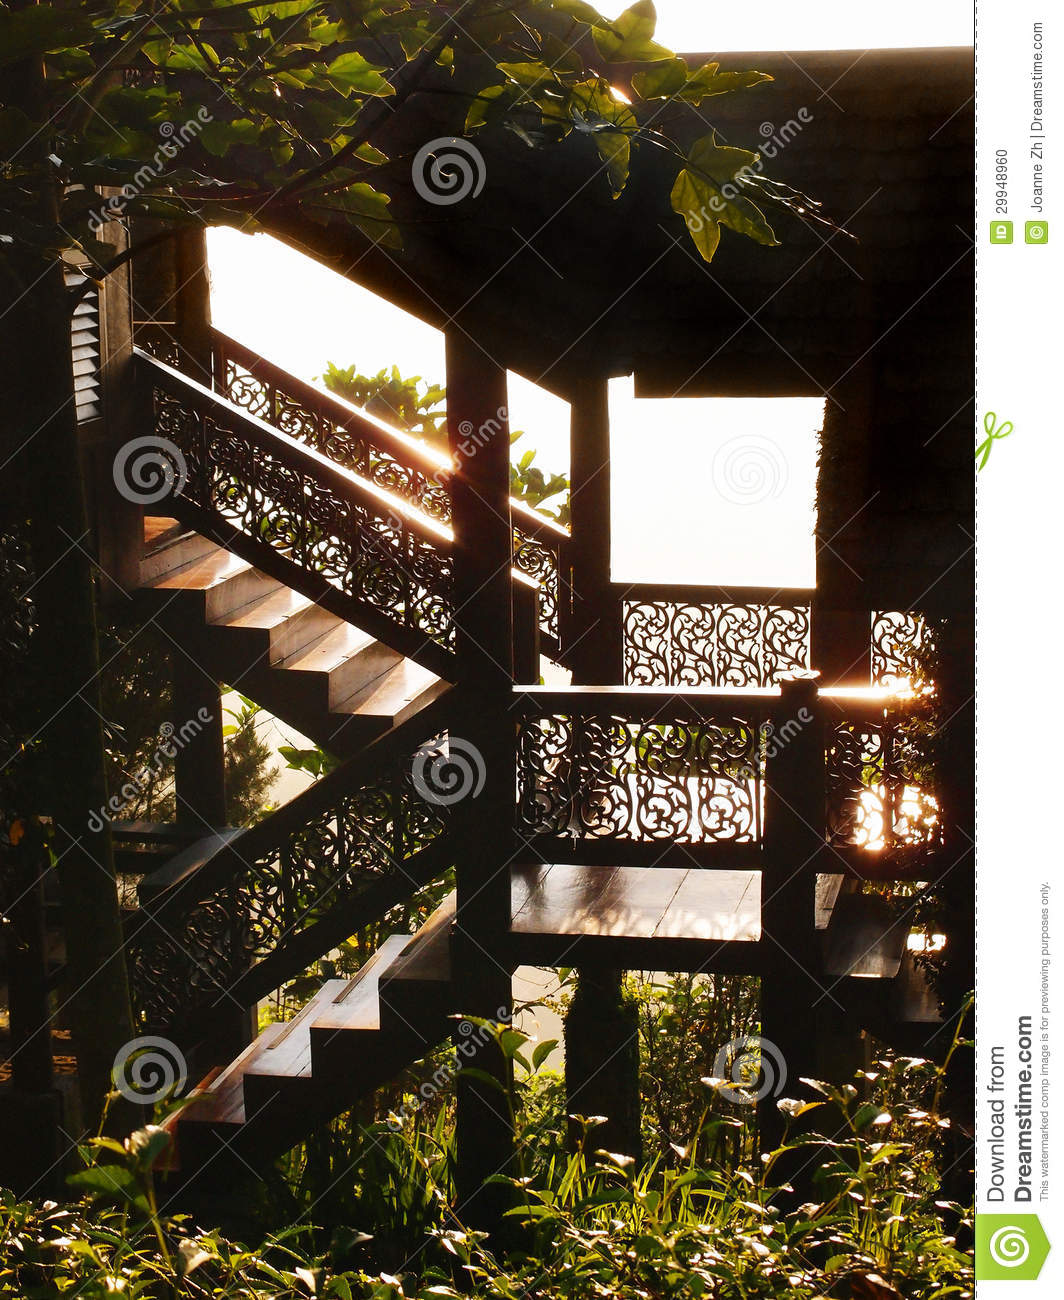 Home Design Thailand: Thai Traditional Timber House Details In Sunlight Stock